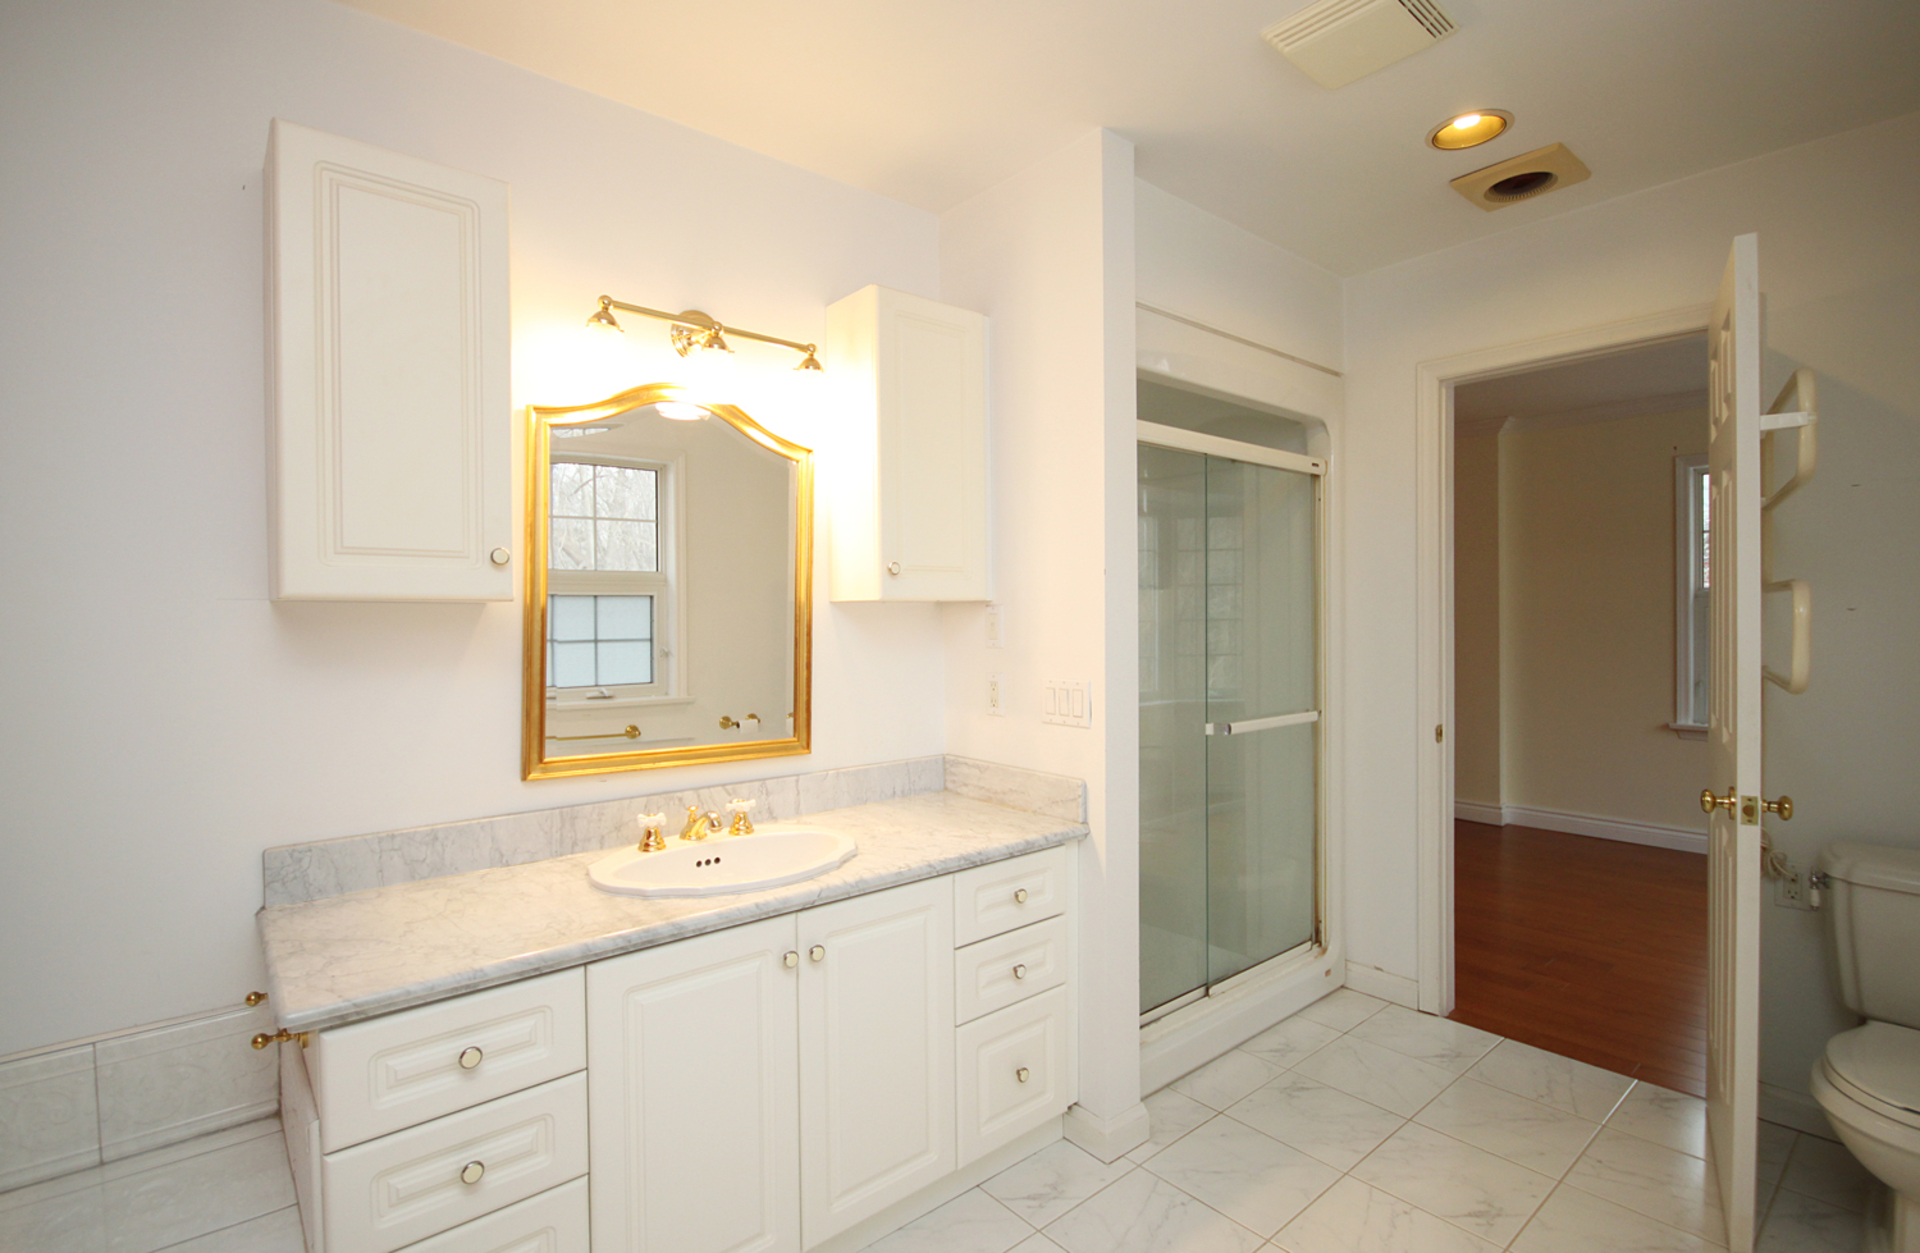 4 Piece Ensuite Bathroom at 128 Cassandra Boulevard, Parkwoods-Donalda, Toronto